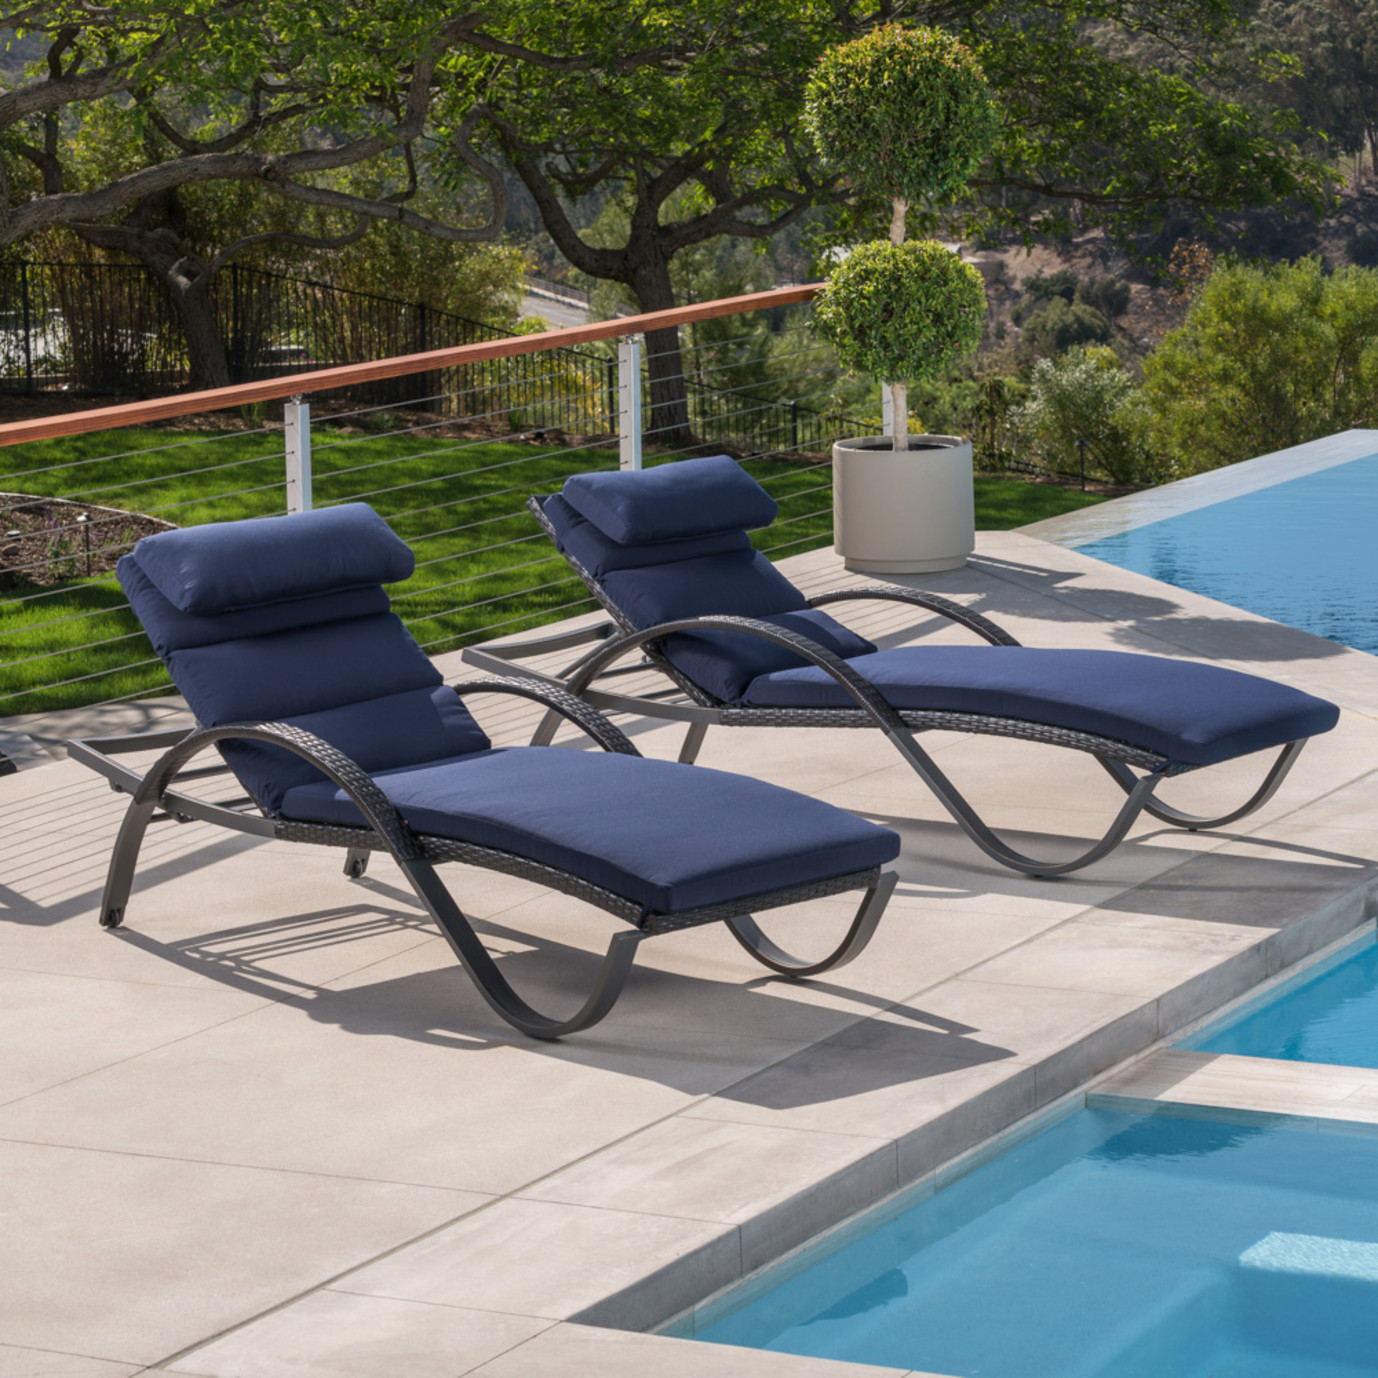 Deco chaise lounges with cushions navy blue rst brands for Blue chaise lounge cushions